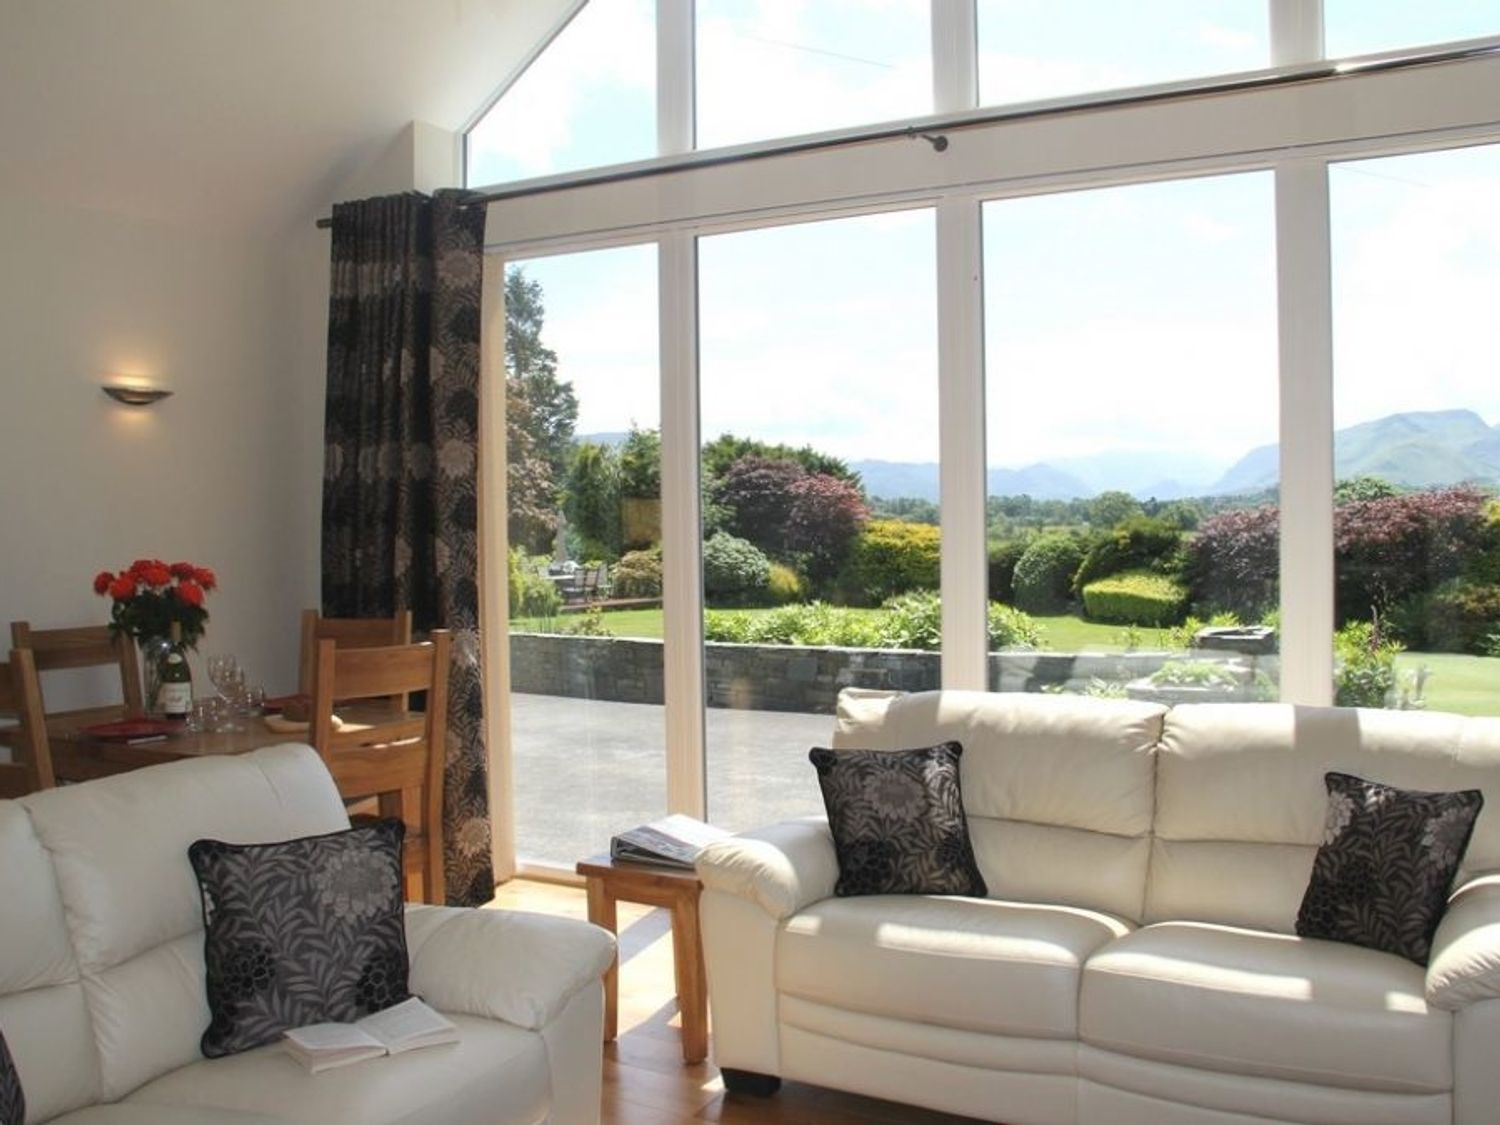 Fabulous properties for rent in and around the market town of Keswick